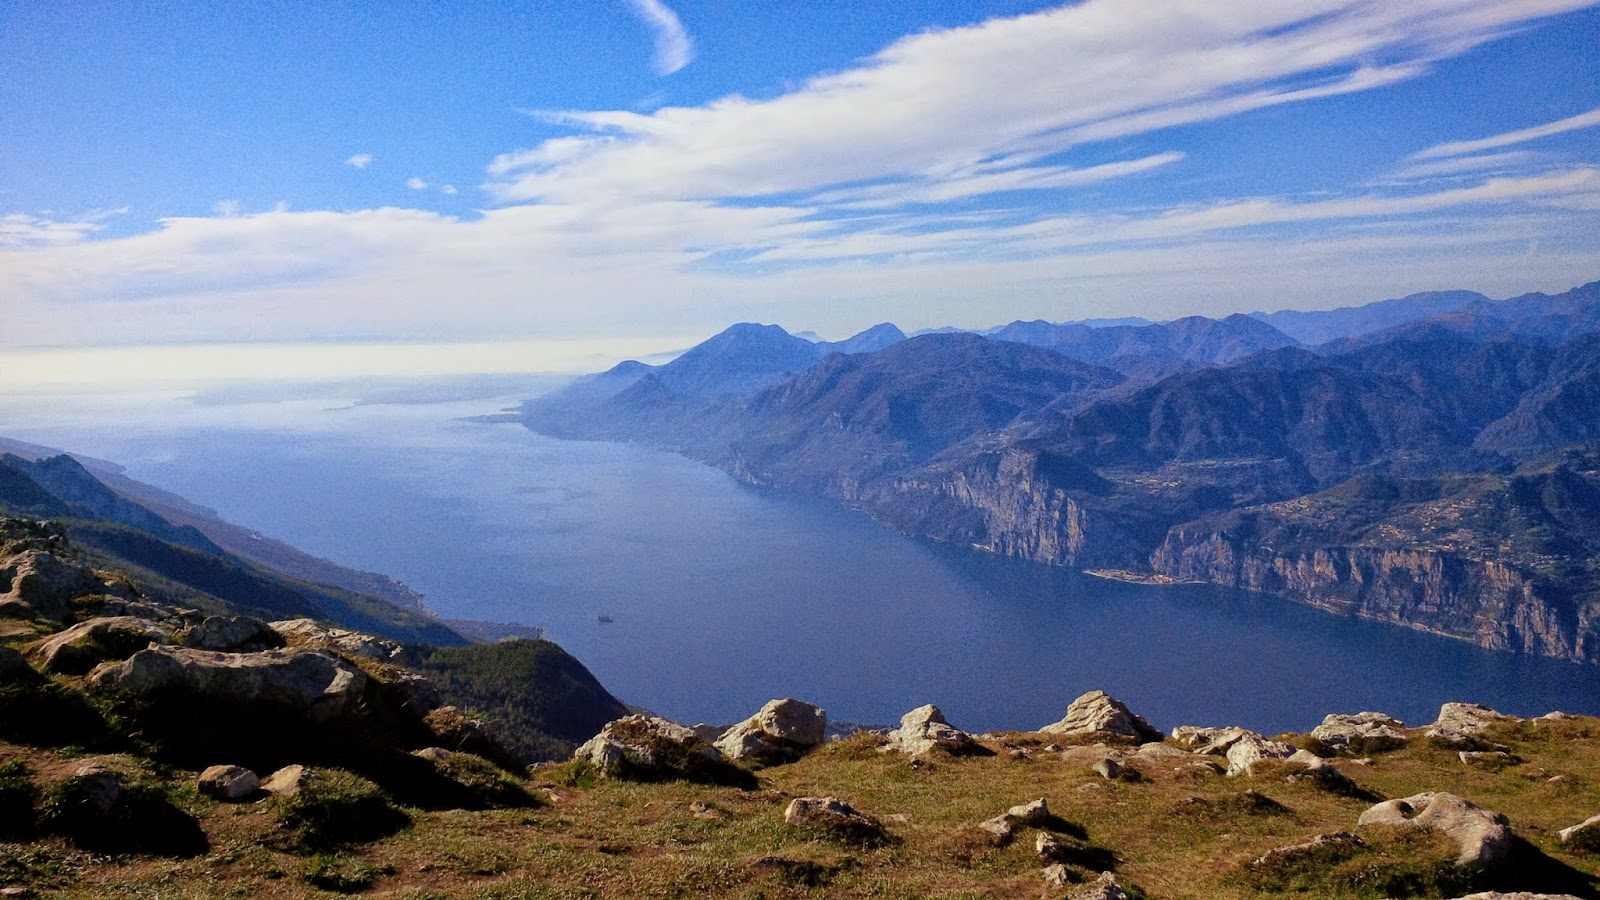 Lake Garda seen from Mount Baldo